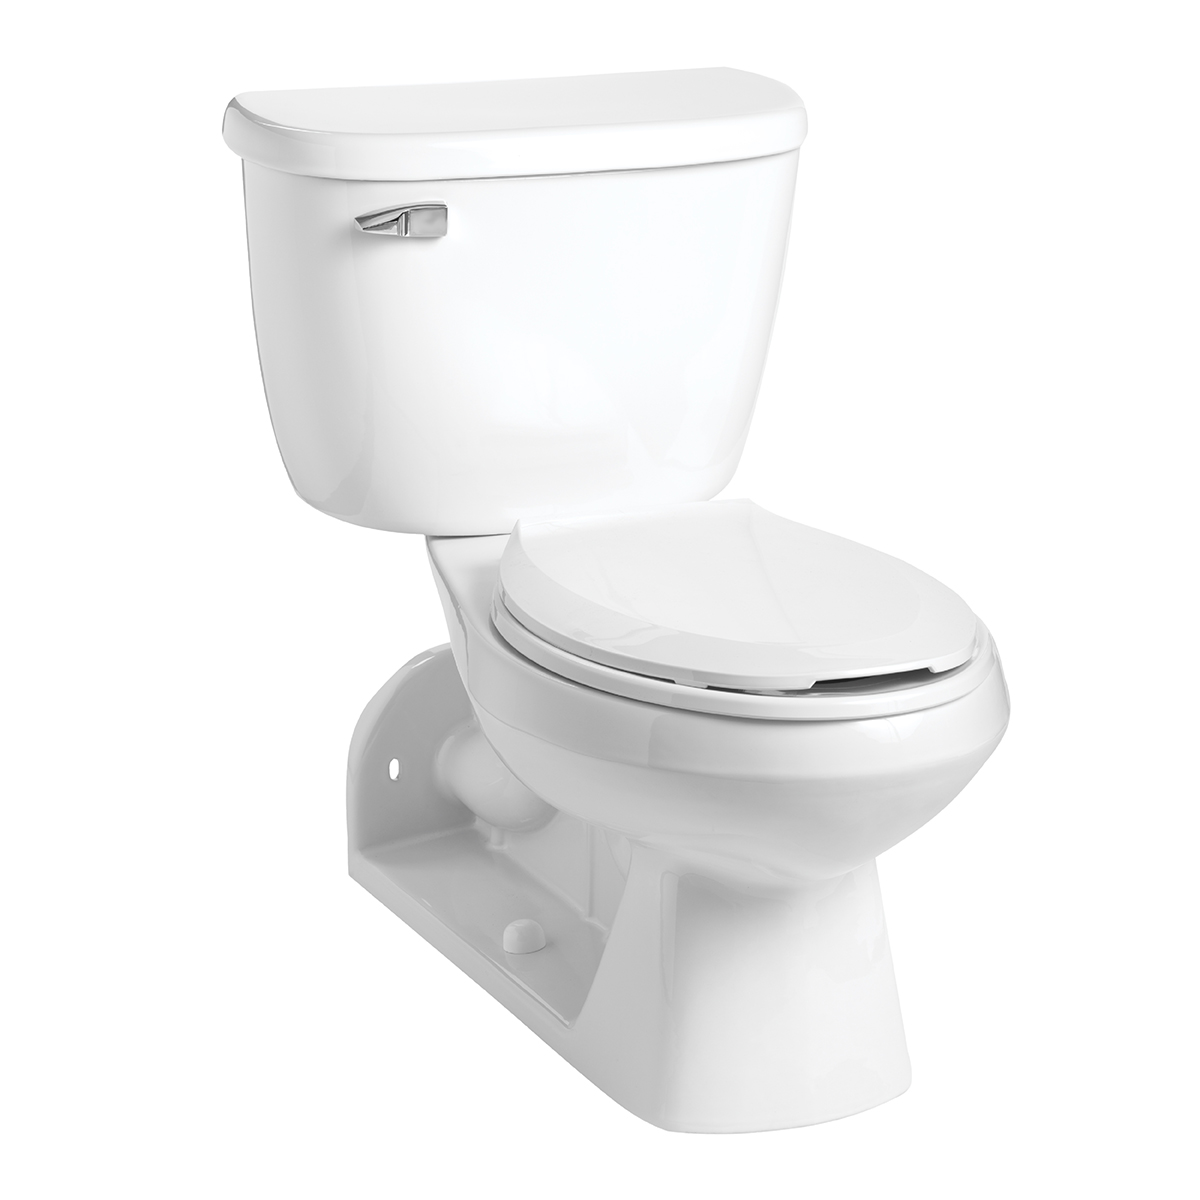 Picture of: Quantumone 1 0 Elongated Rear Outlet Floor Mount Toilet Combination Mansfield Plumbing